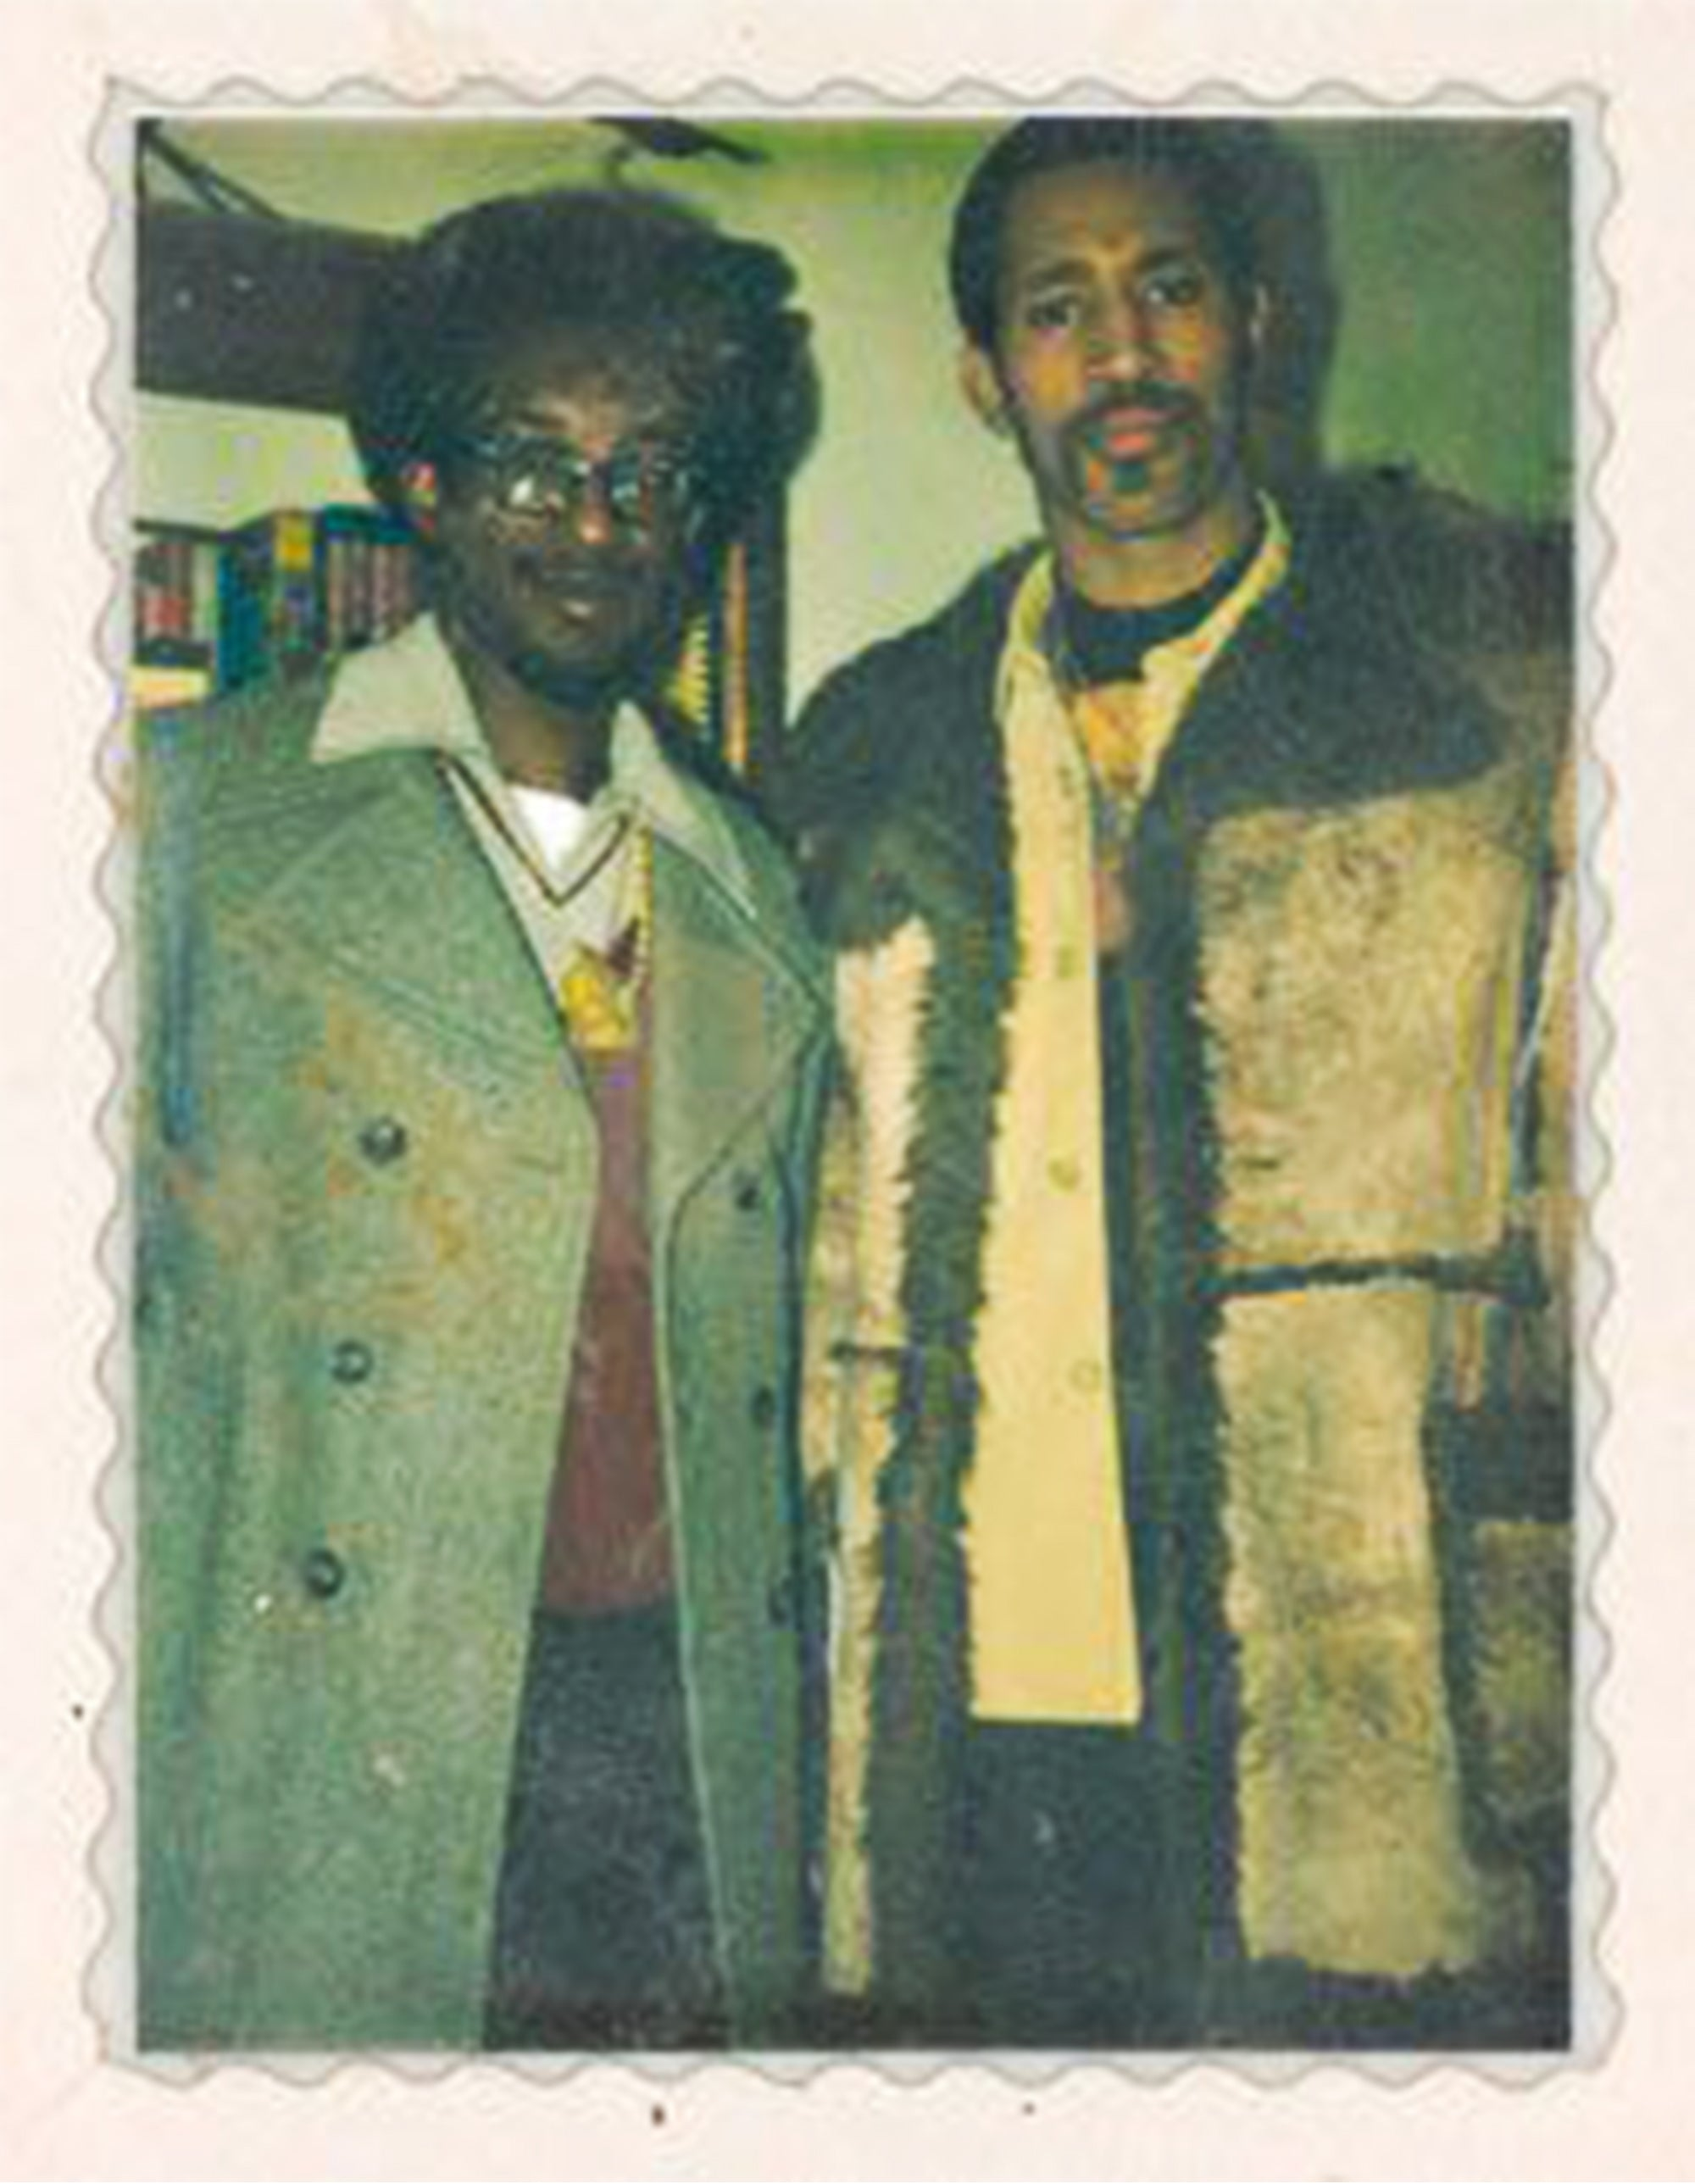 Coke La Rock and DJ Kool Herc